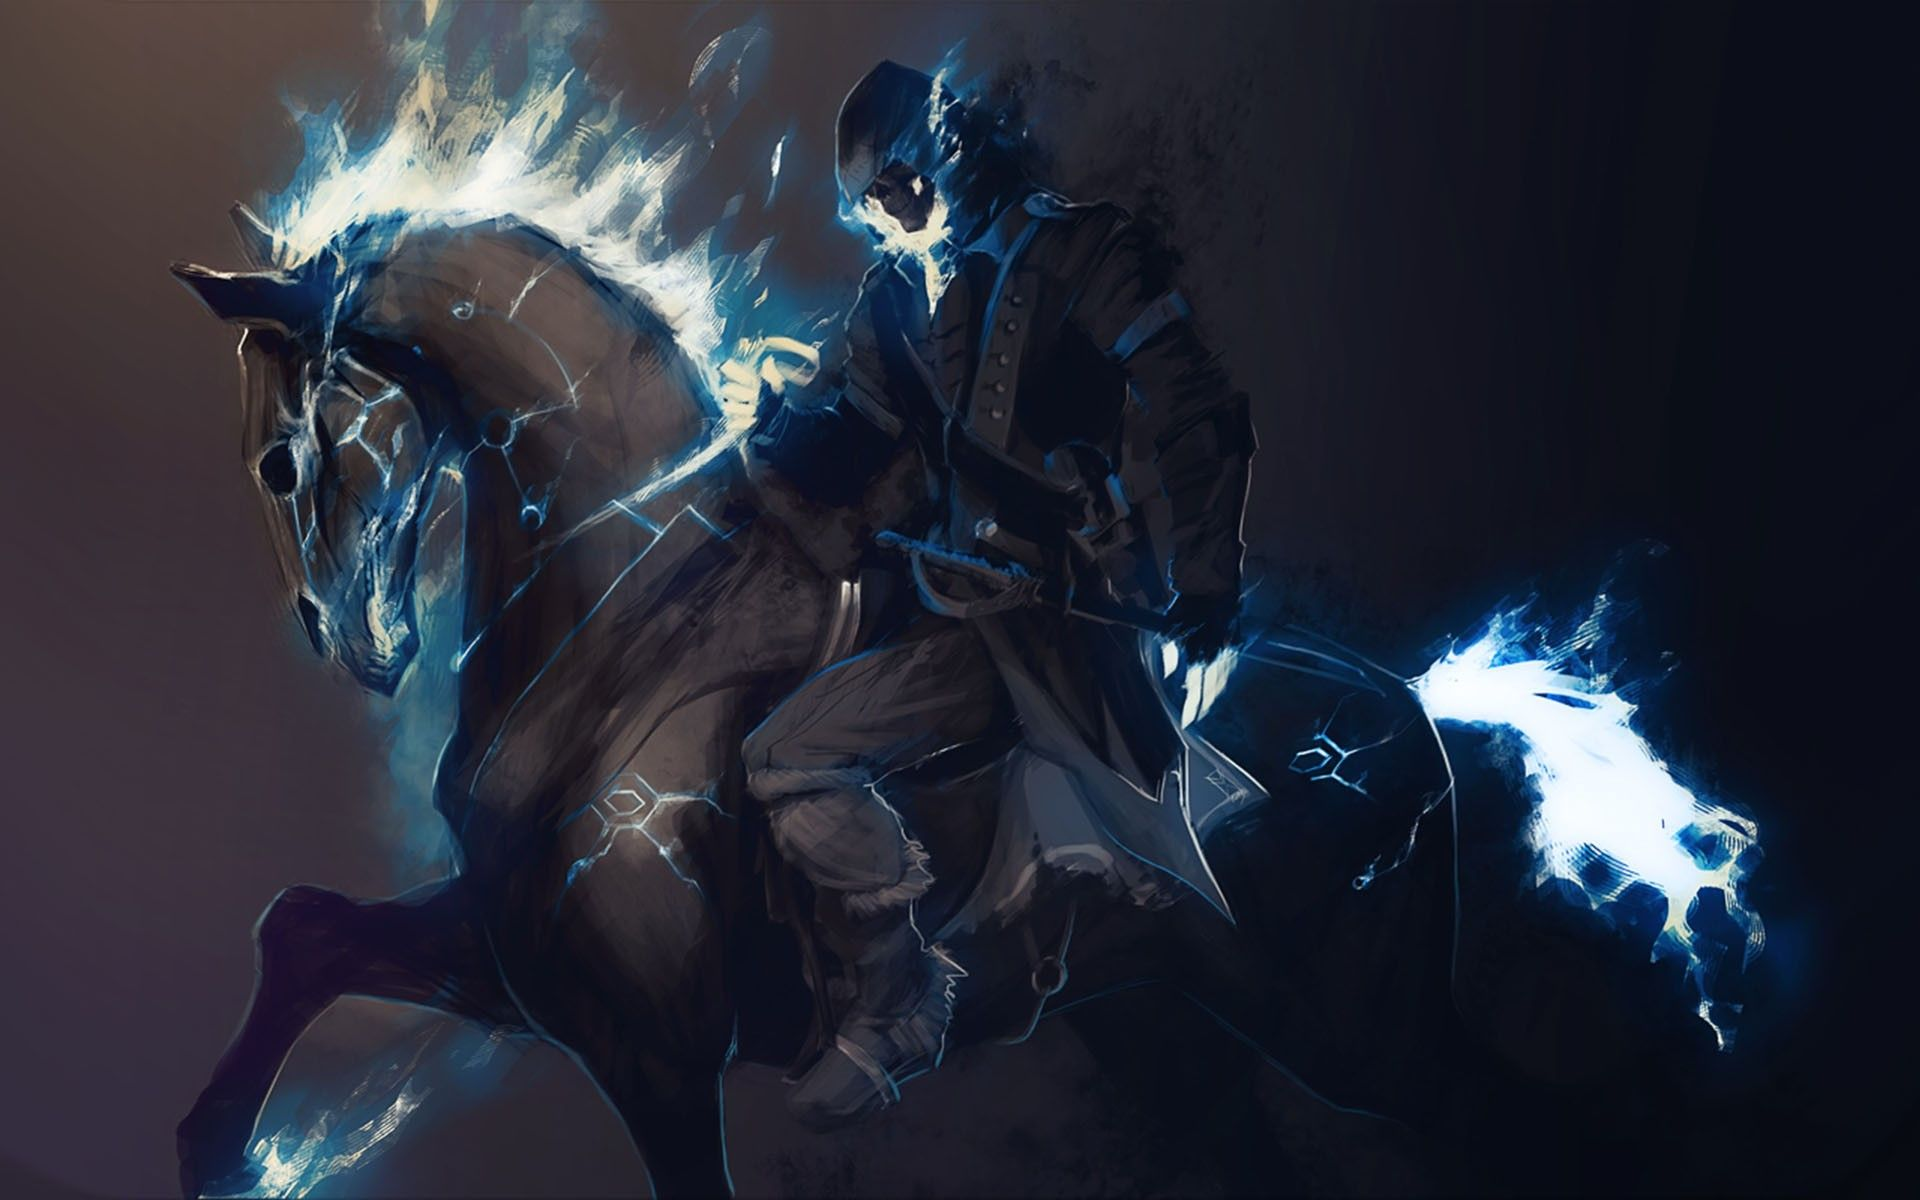 Ghost Rider Ghost Rider Wallpaper Horse Artwork Fire Horse